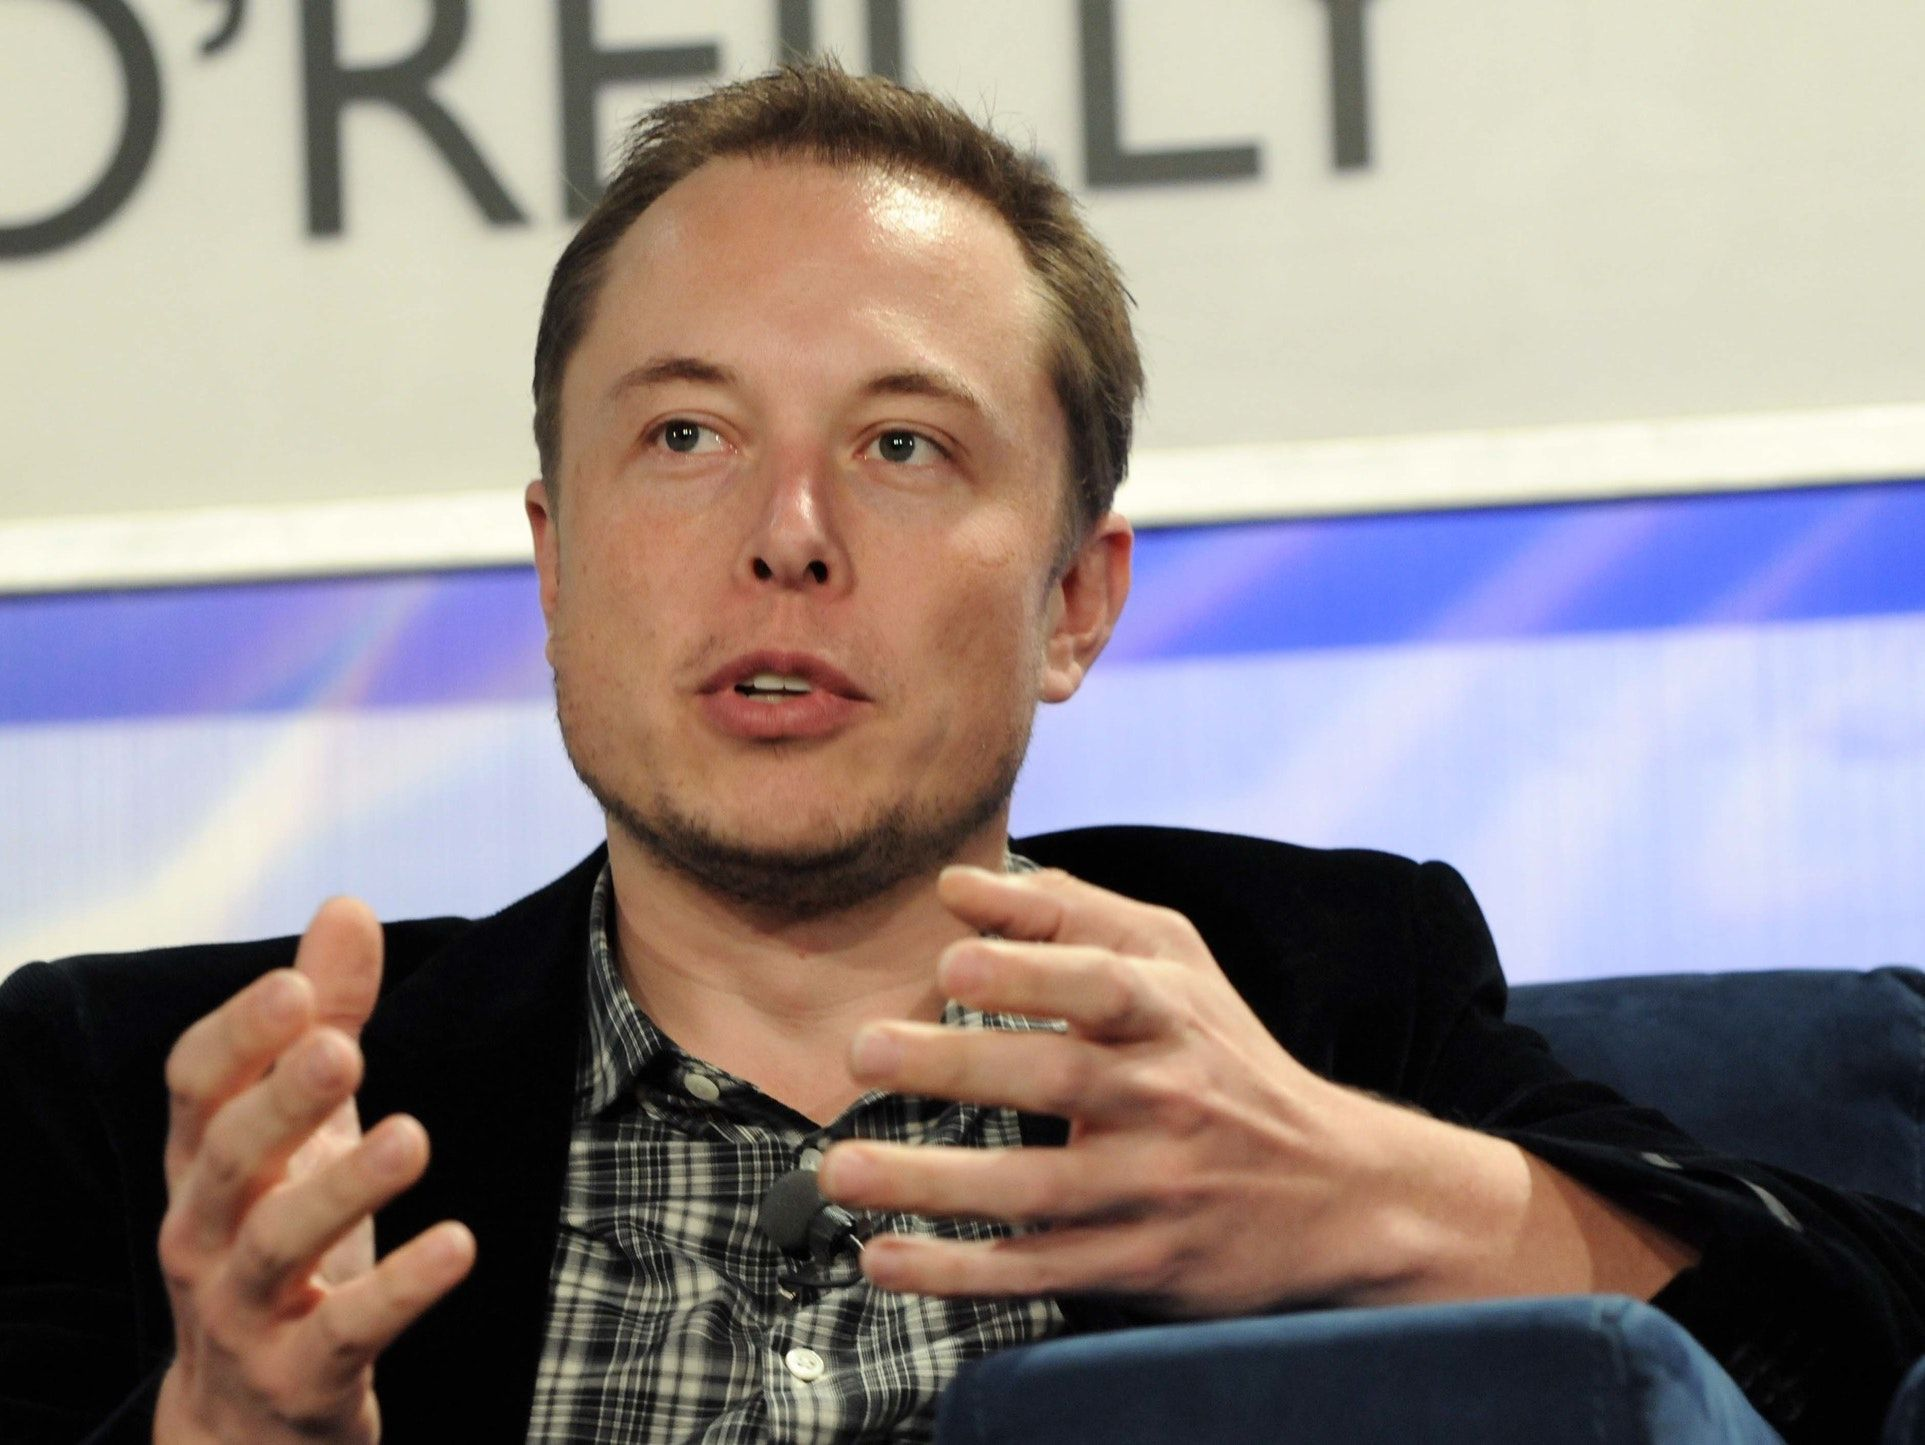 Elon musk reveals how he wants to fund his private tesla